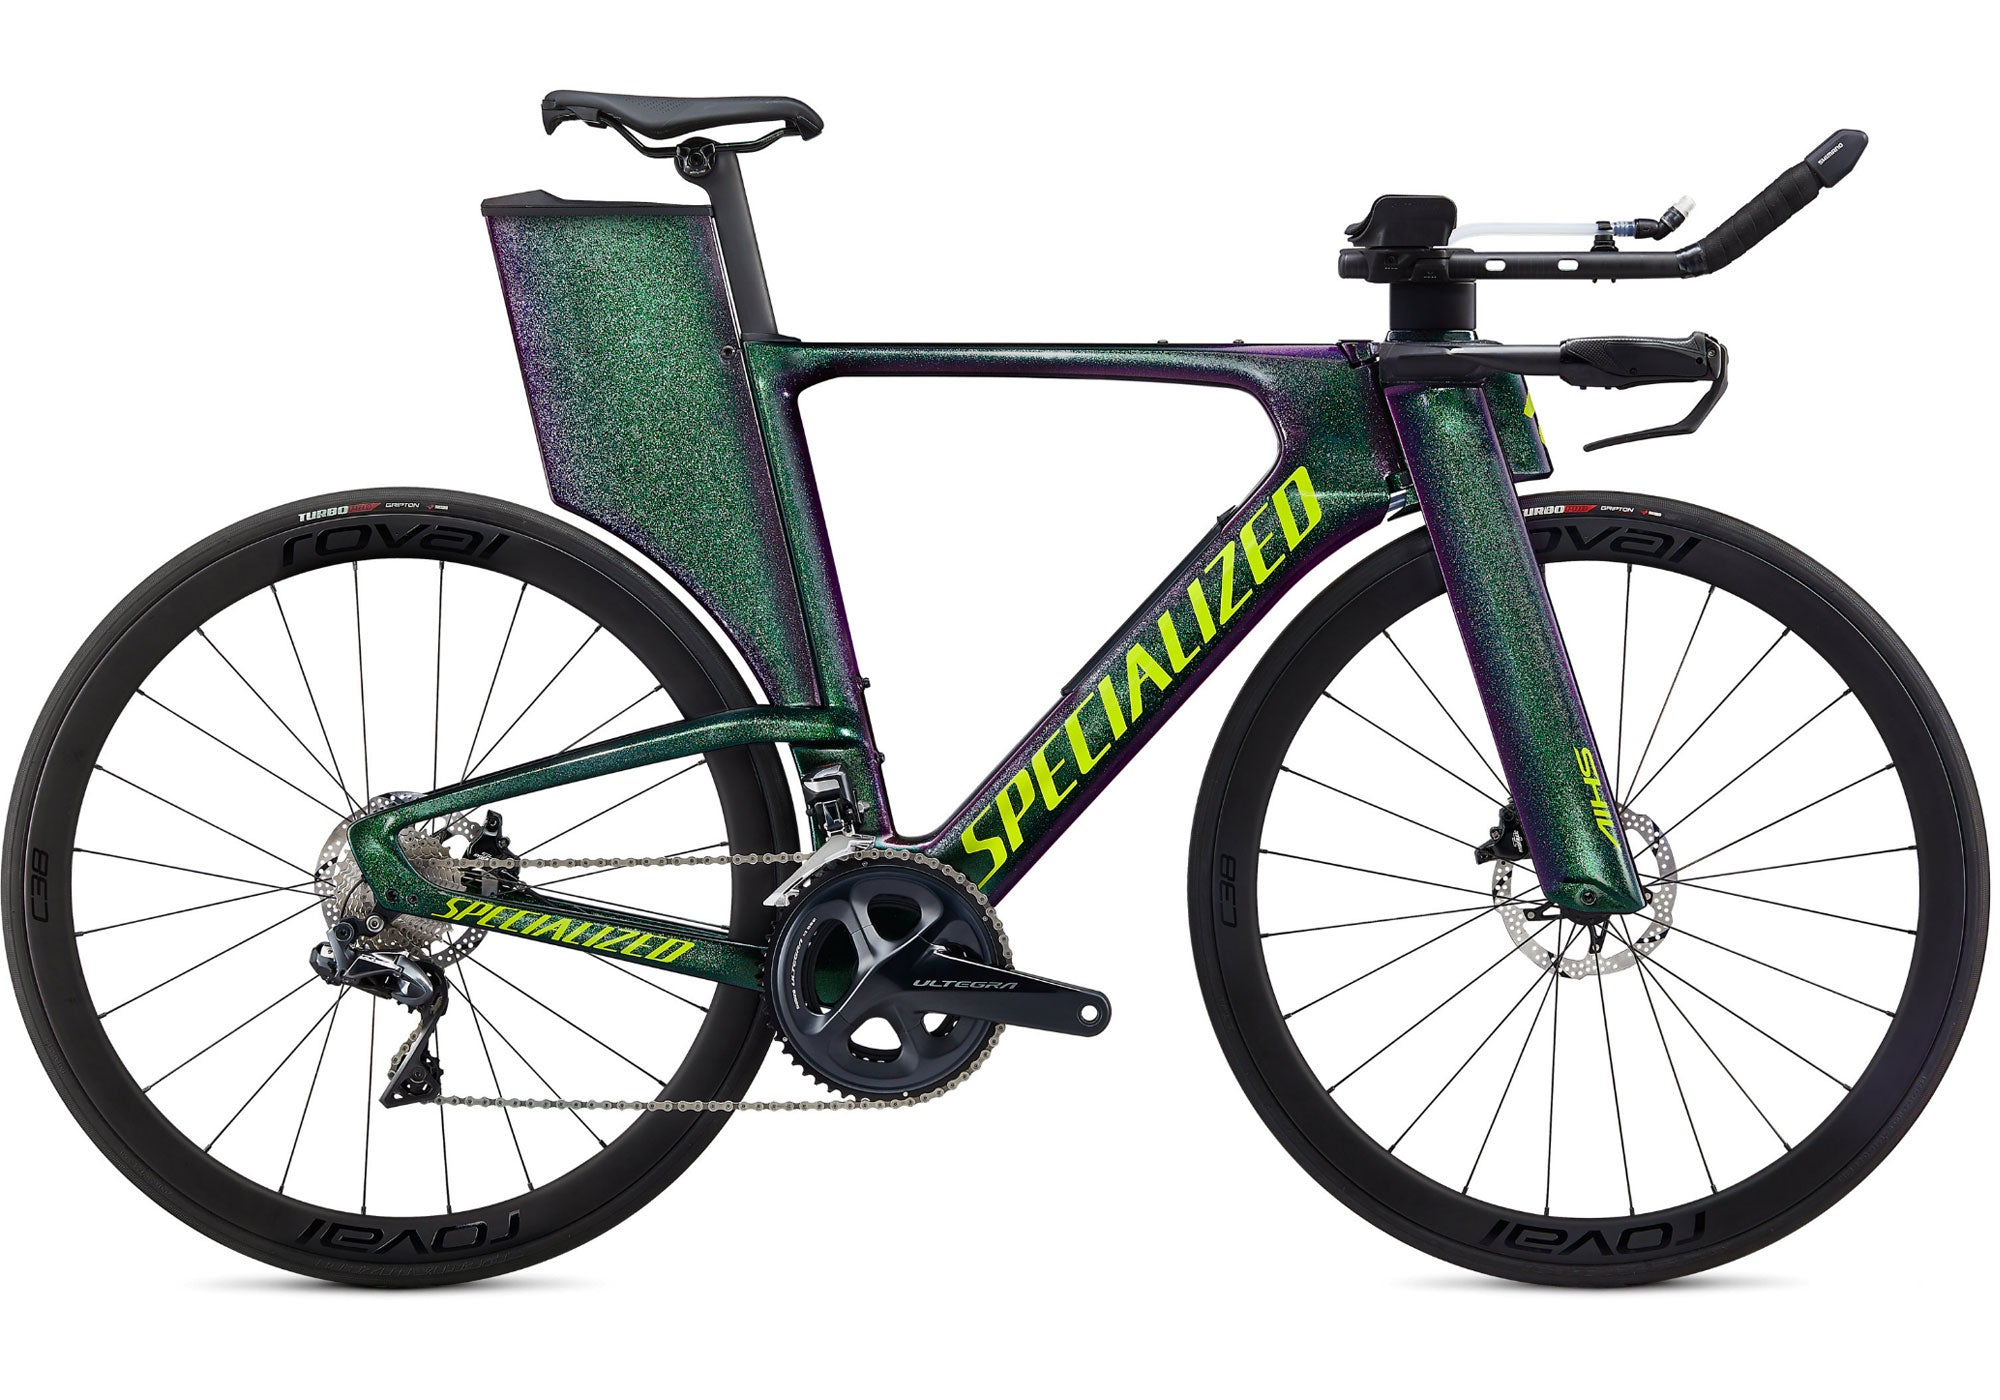 2020 Specialized Shiv Expert Disc, Gloss Green Chameleon Woolys Wheels Sydney